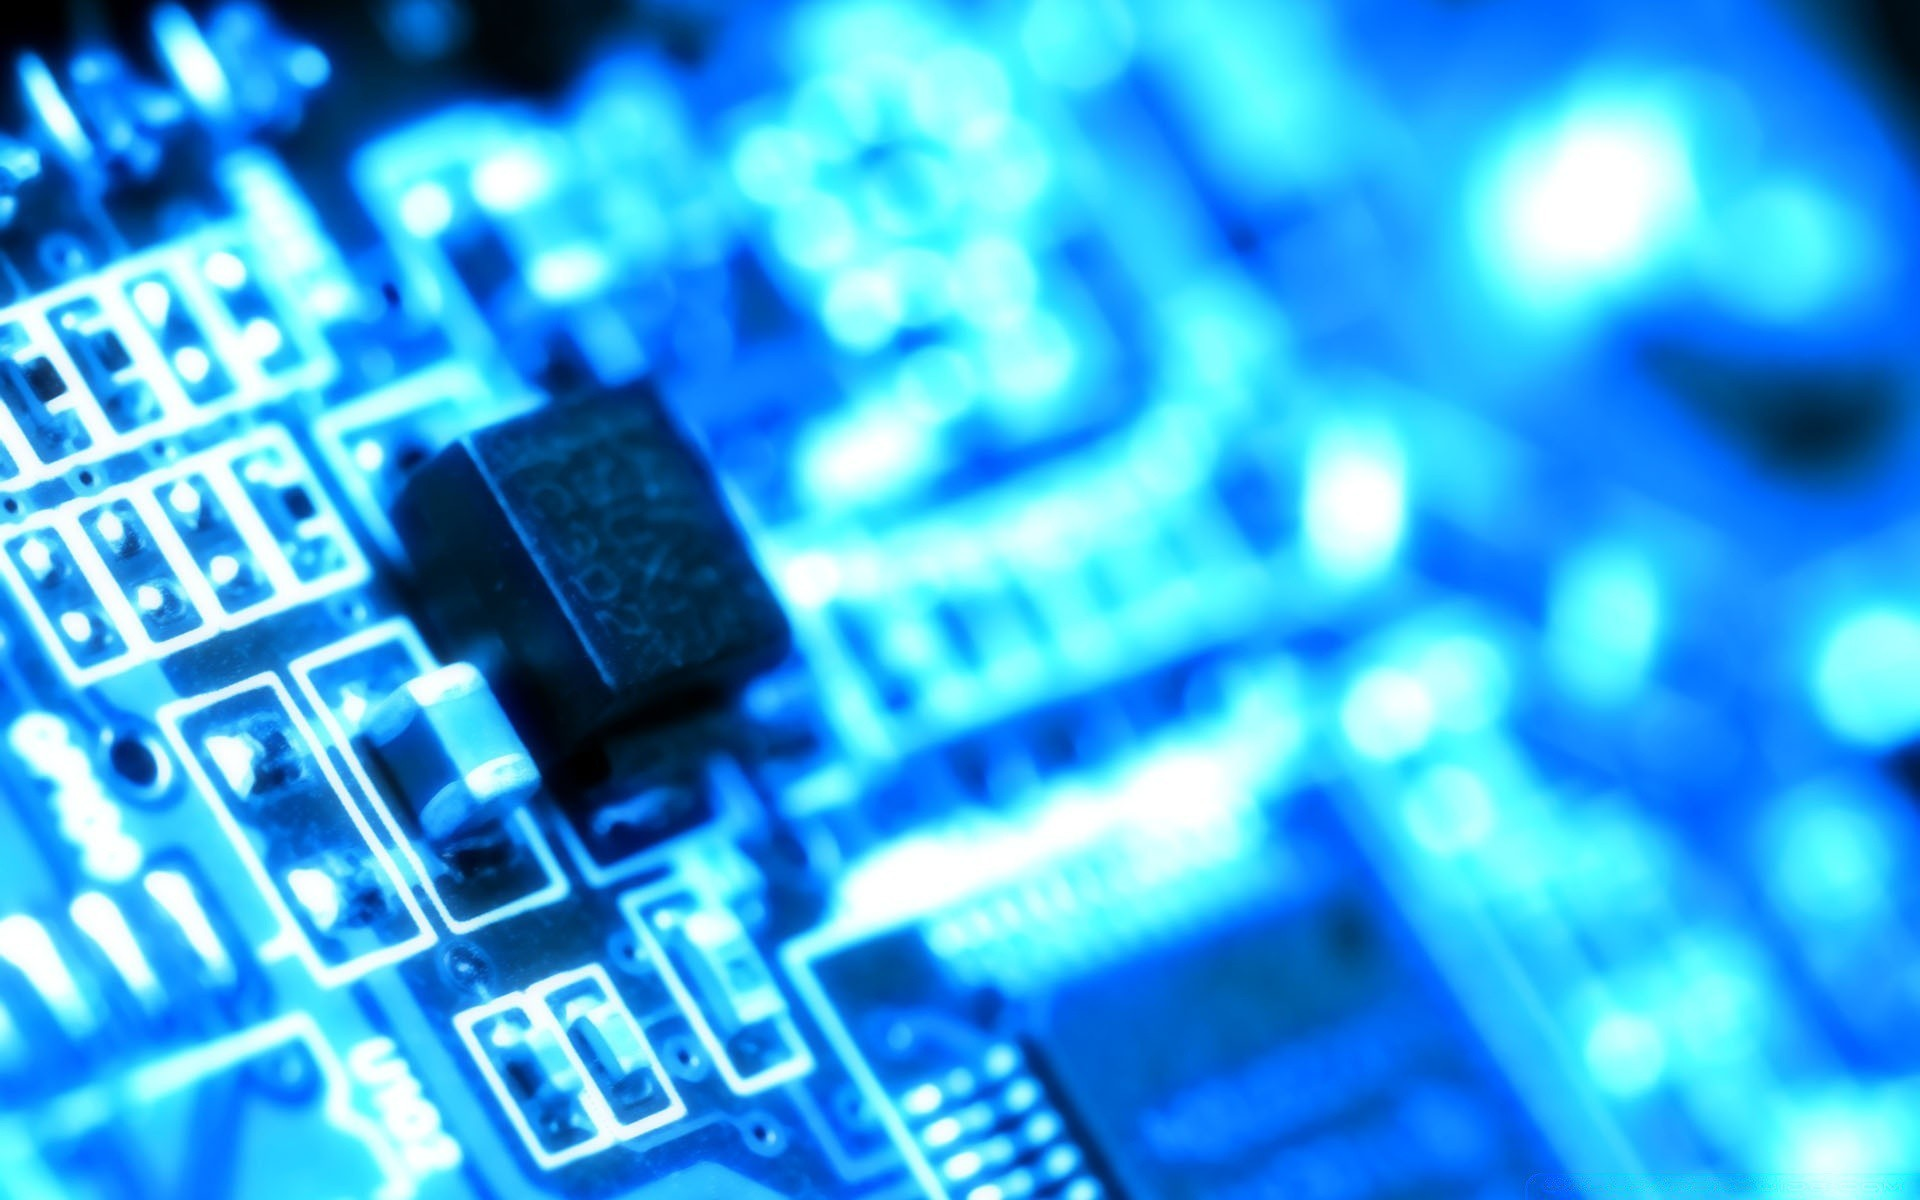 1920x1200 hardware electronics data technology computer internet connection chip cpu  blur semiconductor futuristic technical school communication detail